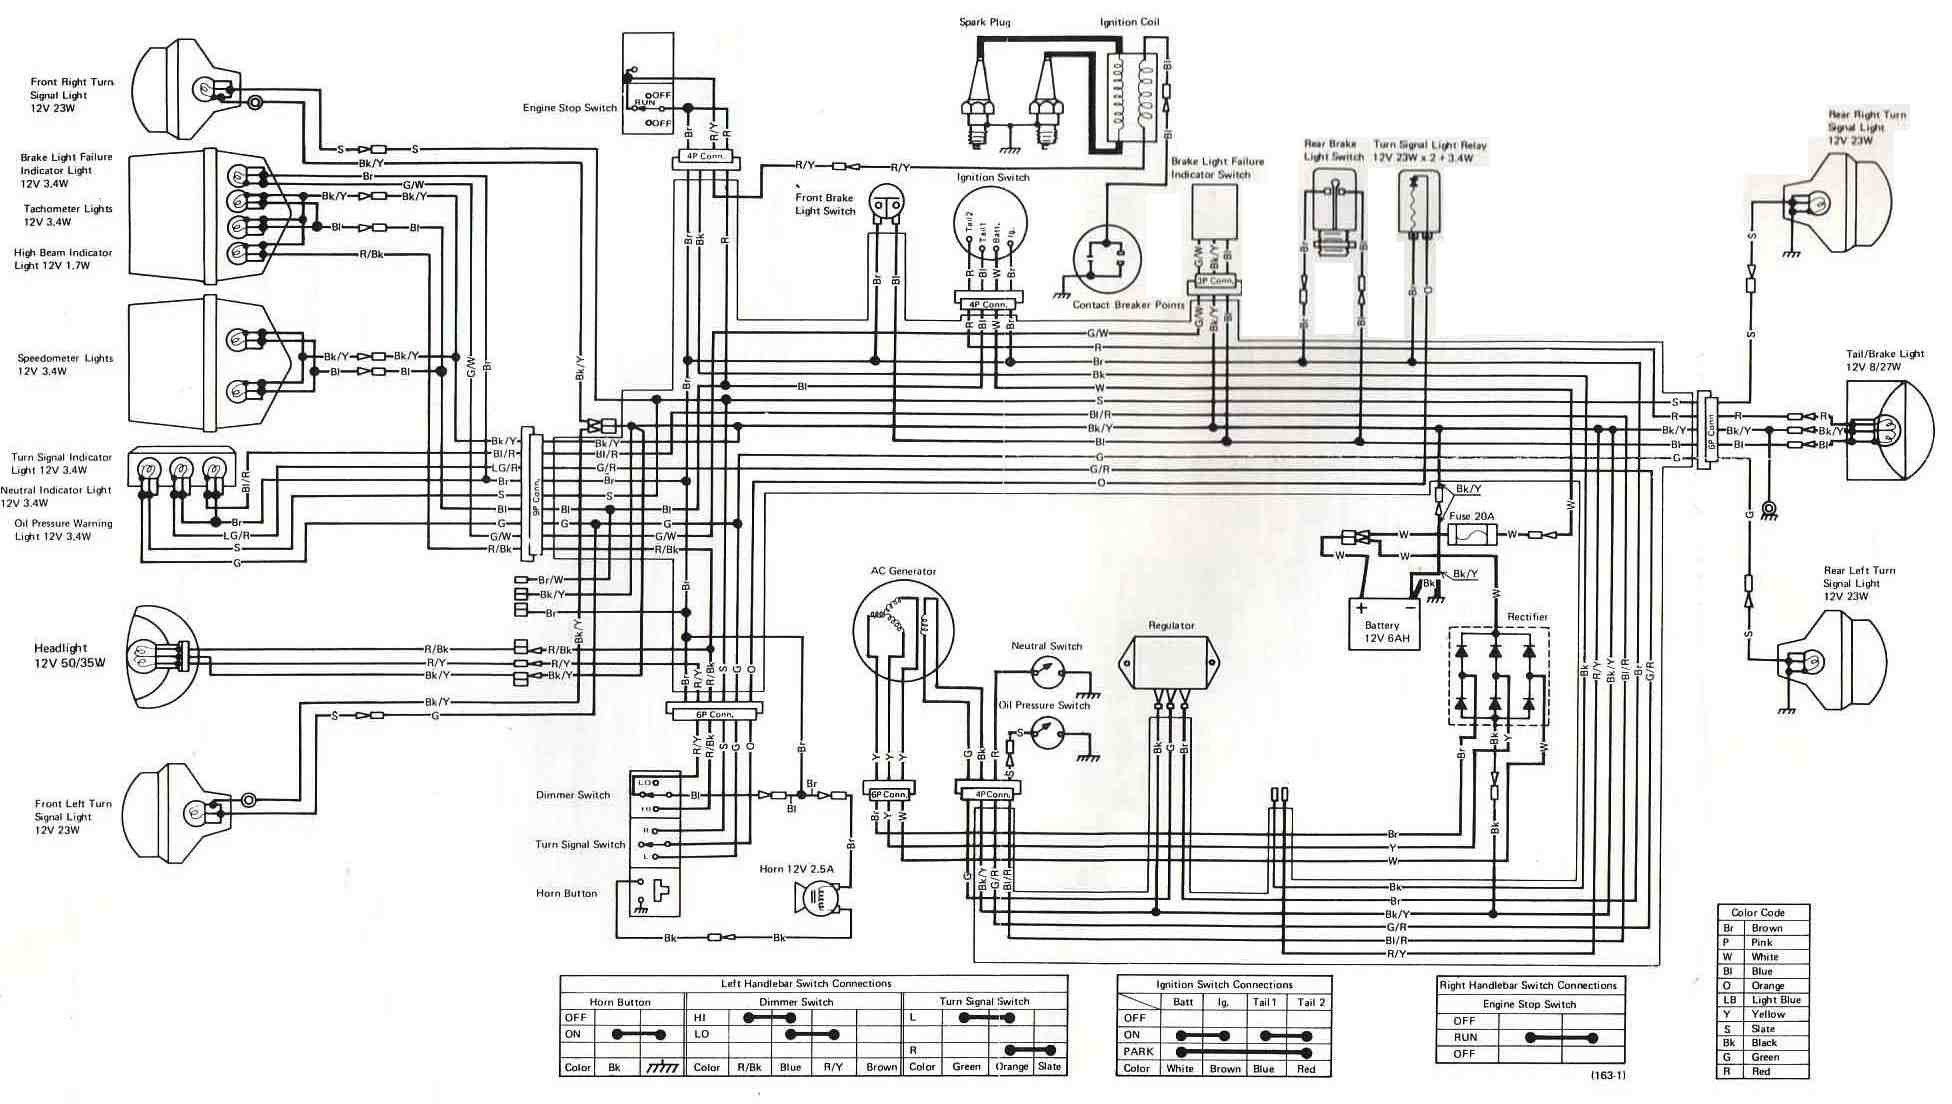 Ex500 Fuel Diagram Wiring Diagrams Schematic Polaris 330 Atv Online Library 2006